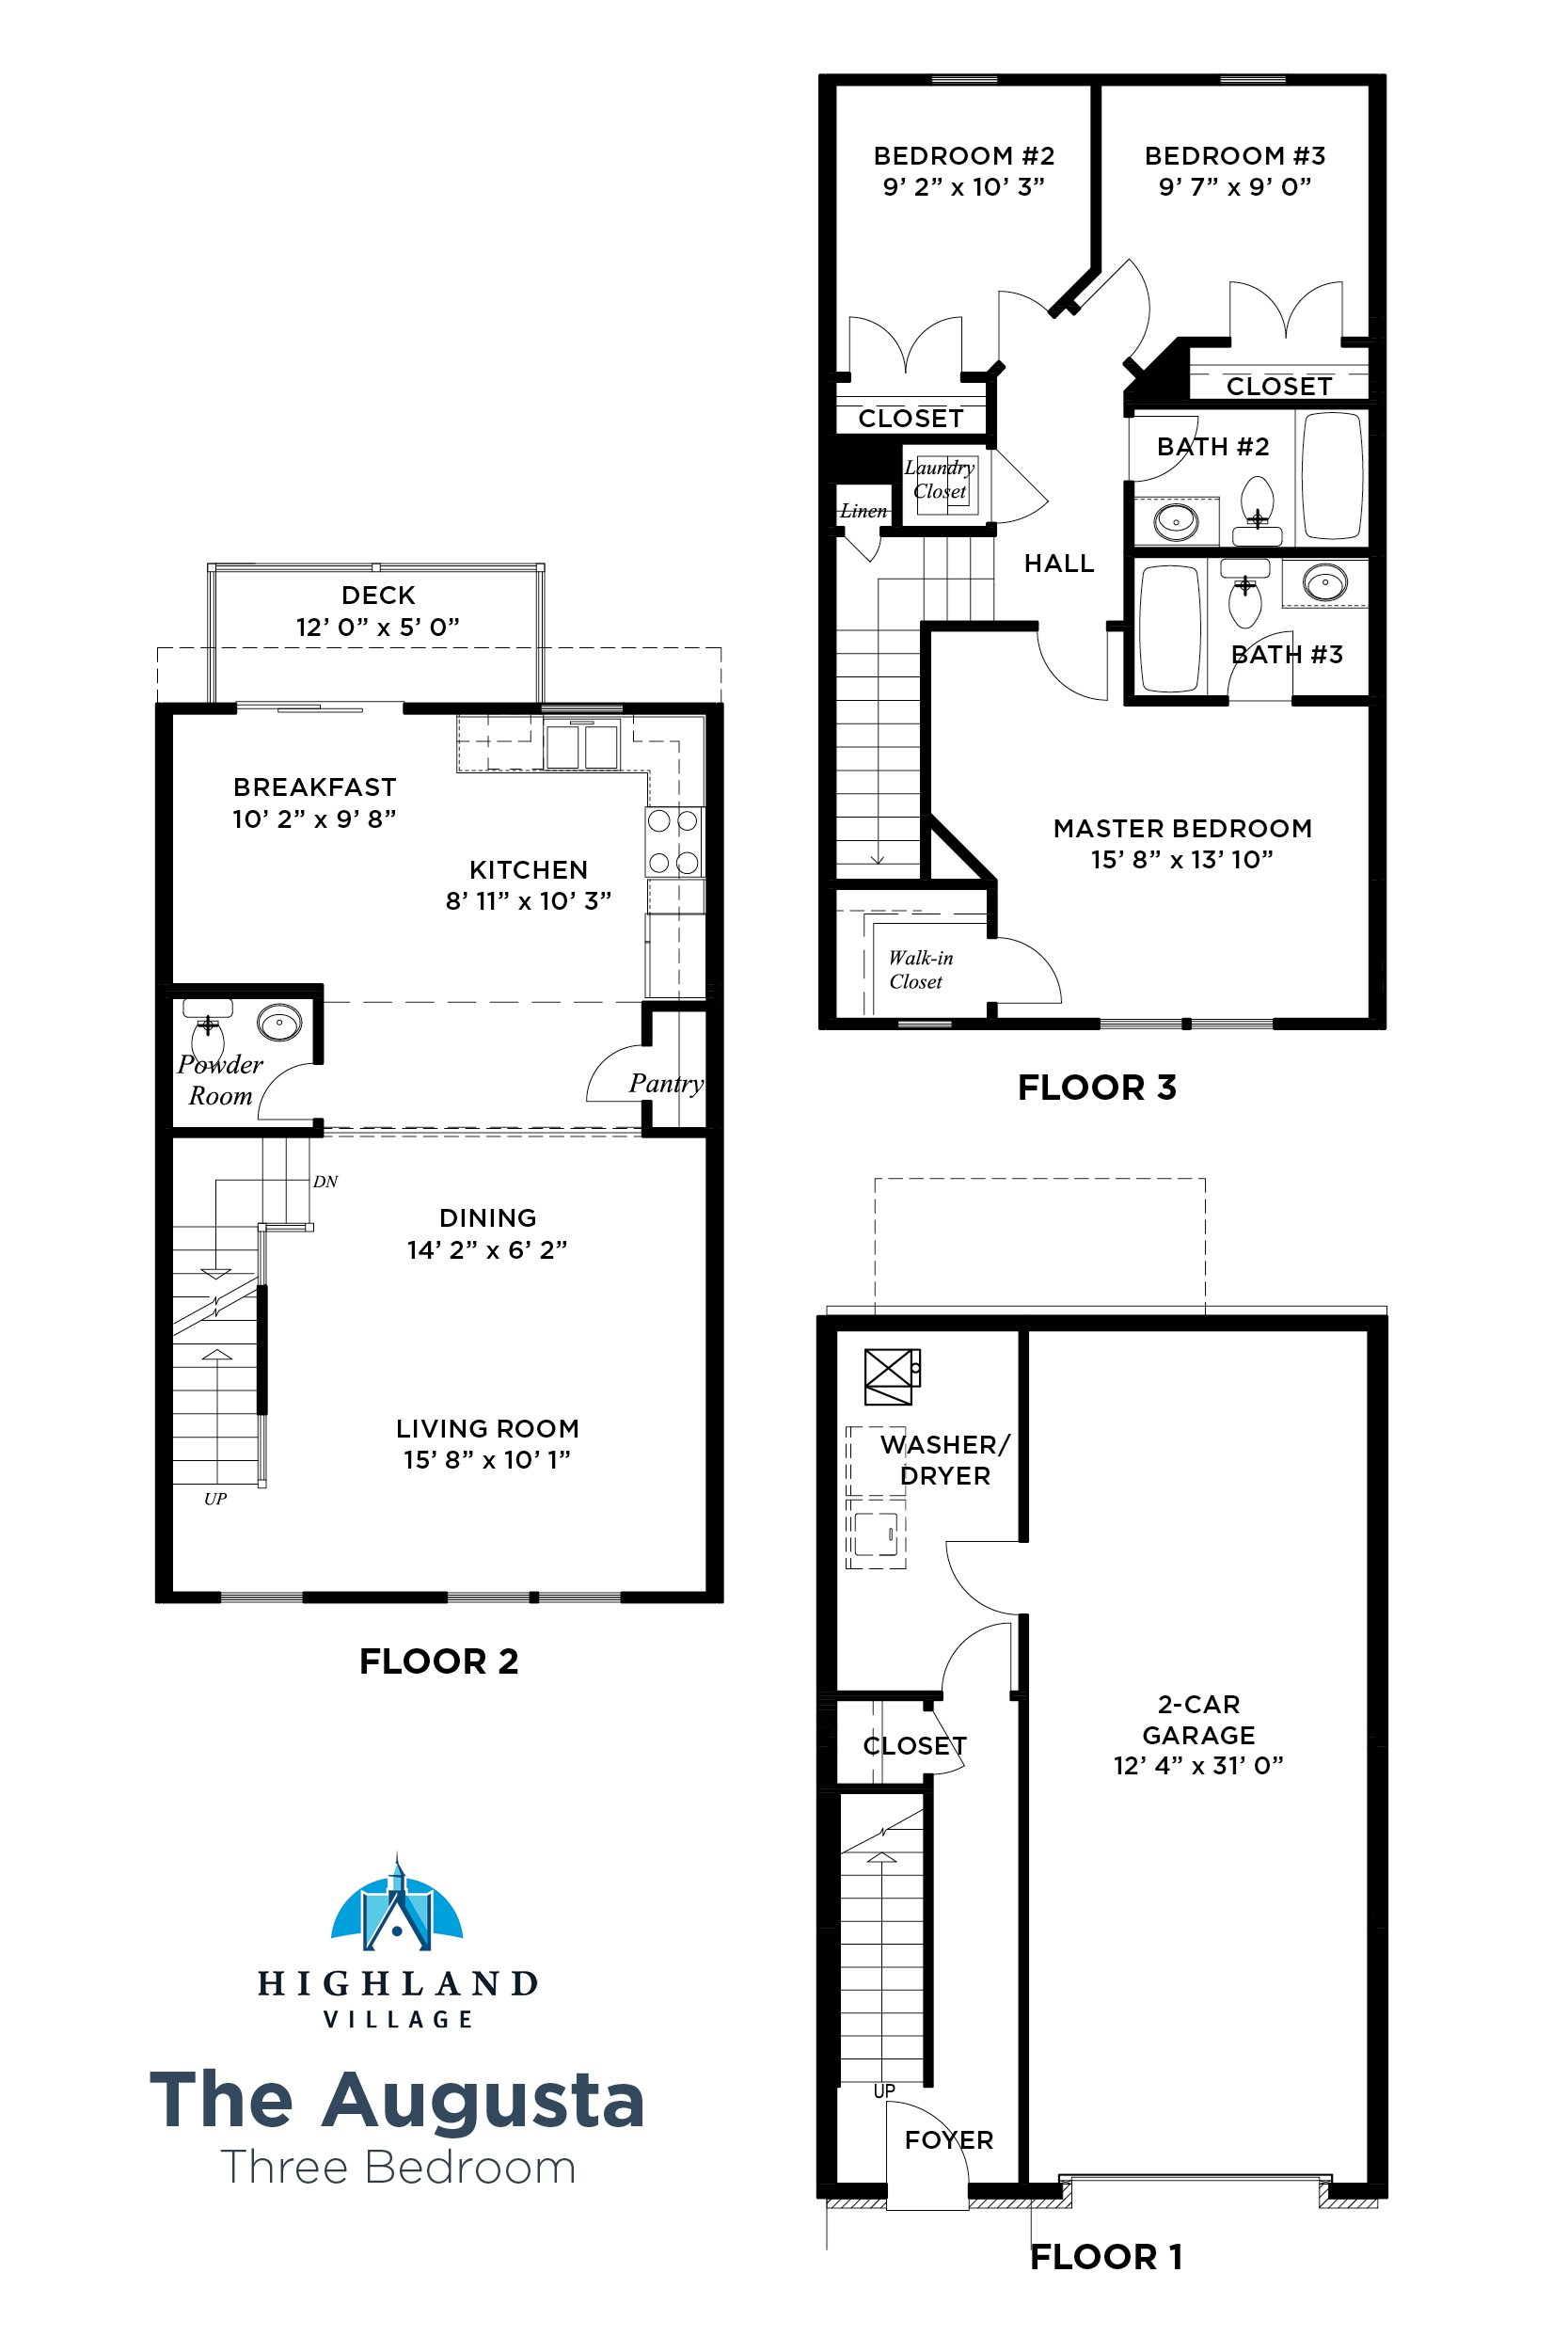 The Augusta Floorplan 3 Bedroom, Highland Village Townhomes in Ross Township, Pittsburgh, PA